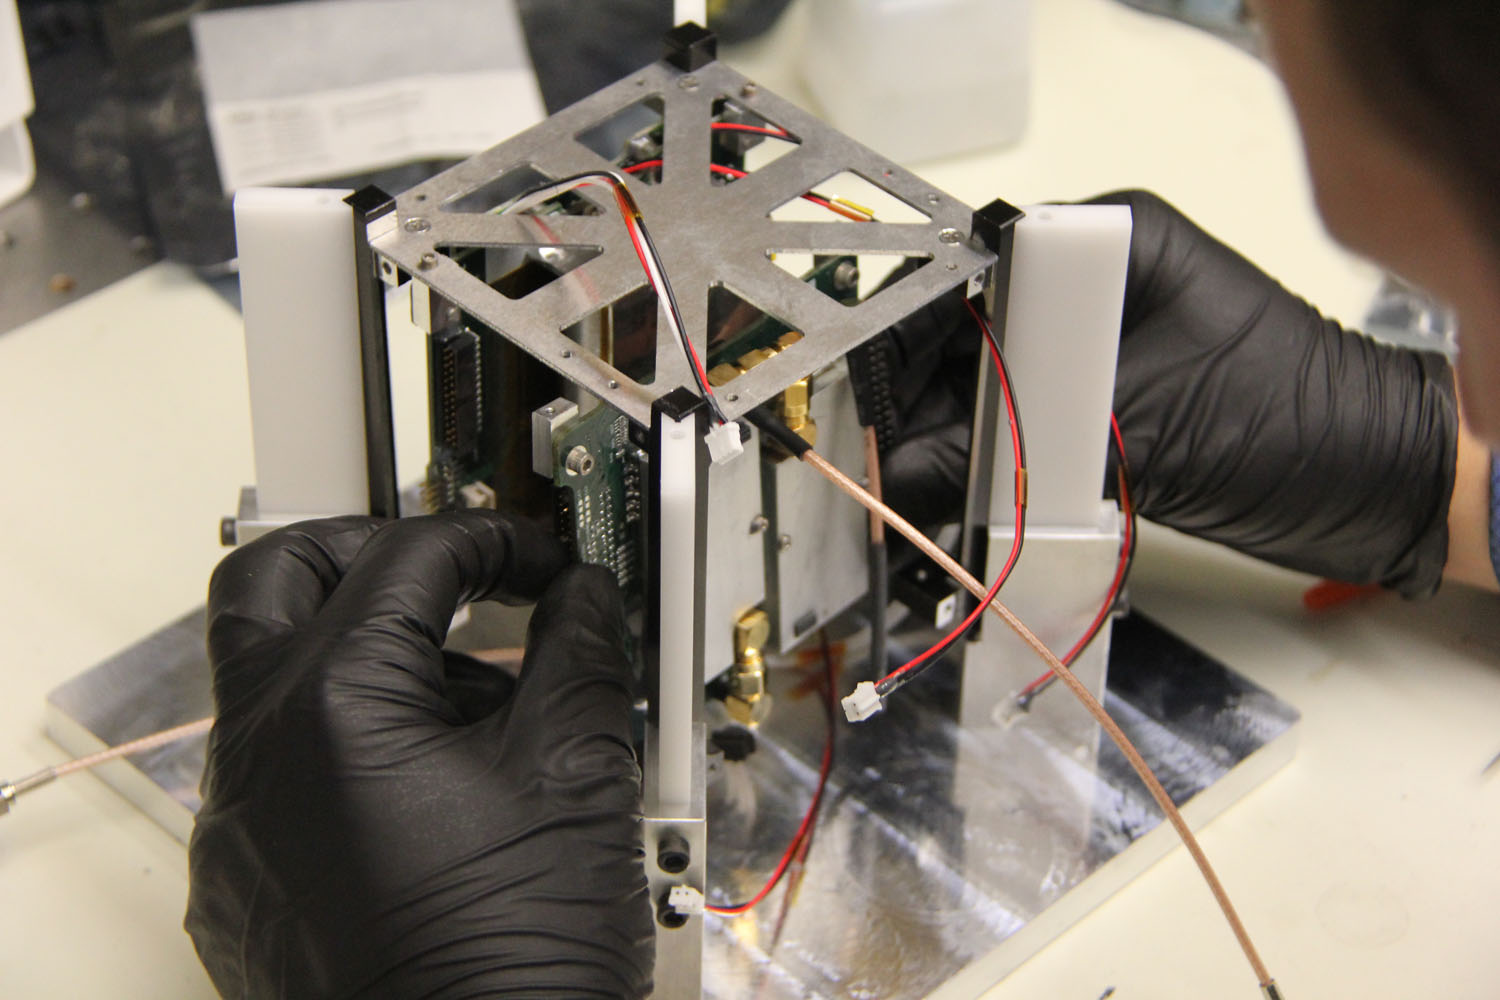 The M-Cubed CubeSat mini-satellite, built by Michigan students, will be used to test high resolution camera hardware for a future NASA Earth science mission. Credit: The Michigan Exploration Lab